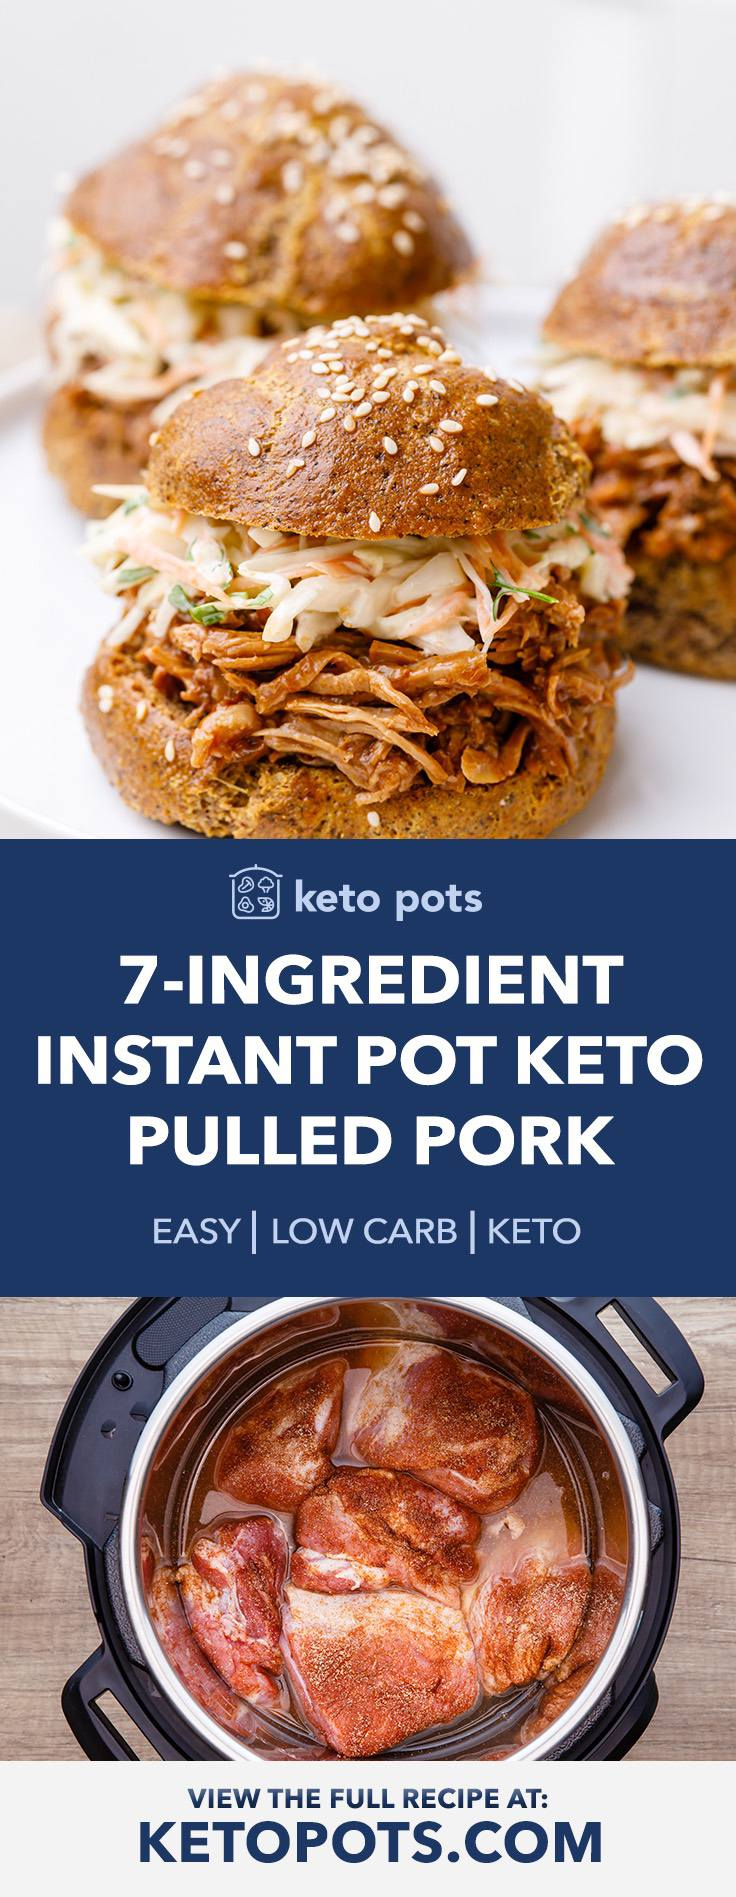 Easy 7-Ingredient Instant Pot Keto Pulled Pork